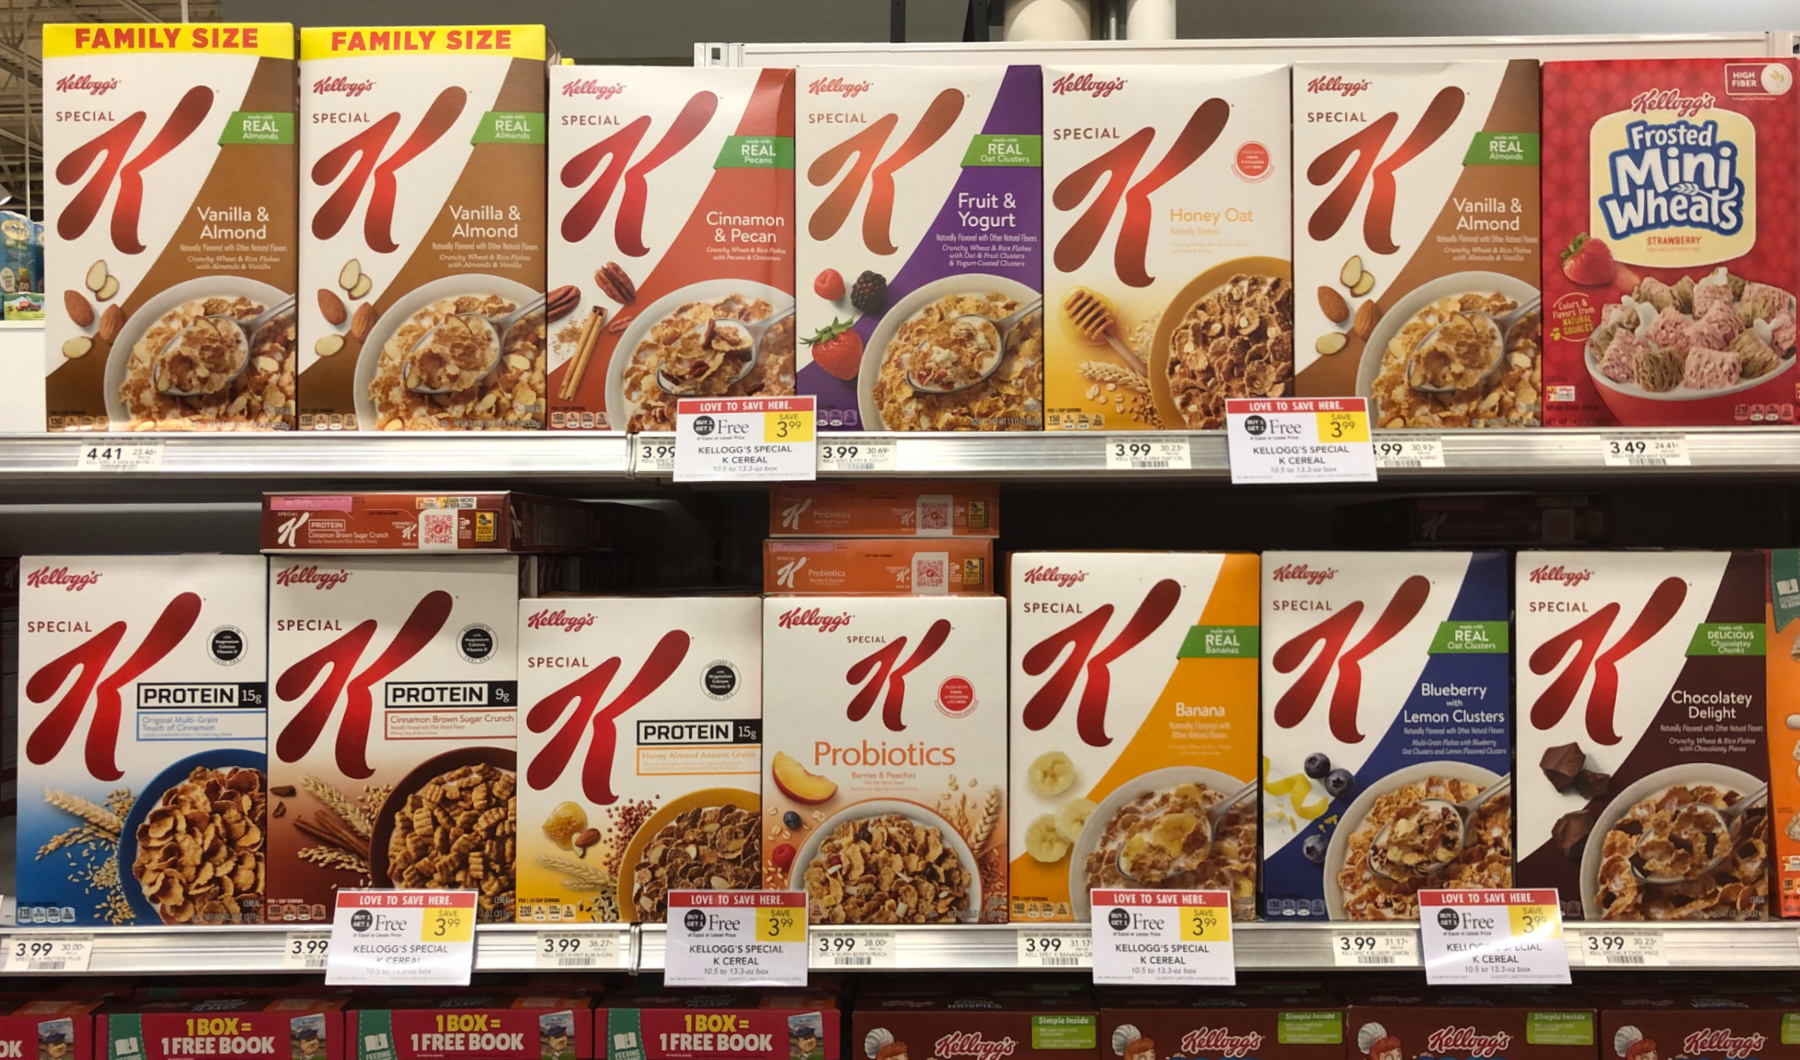 Pick Up Kellogg's® Special K® Cereals During The Publix BOGO Sale (As Low As 90¢) & Sign Up For The Susan G.KomenMiami/Fort Lauderdale Virtual More Thank Pink Walk on I Heart Publix 1